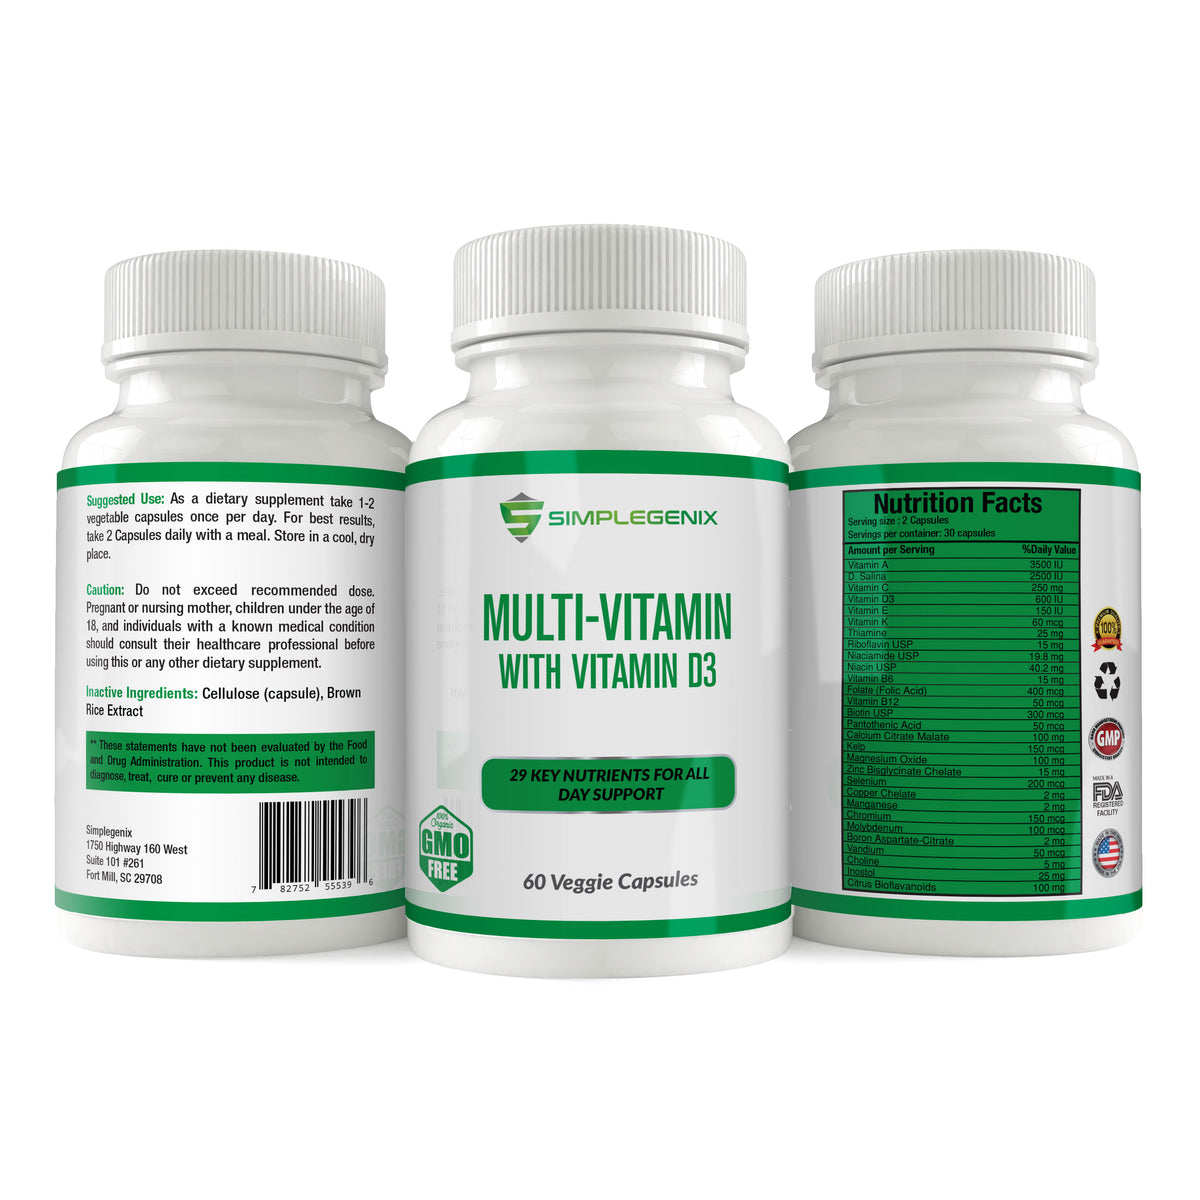 Multi Vitamin with Vitamin D3